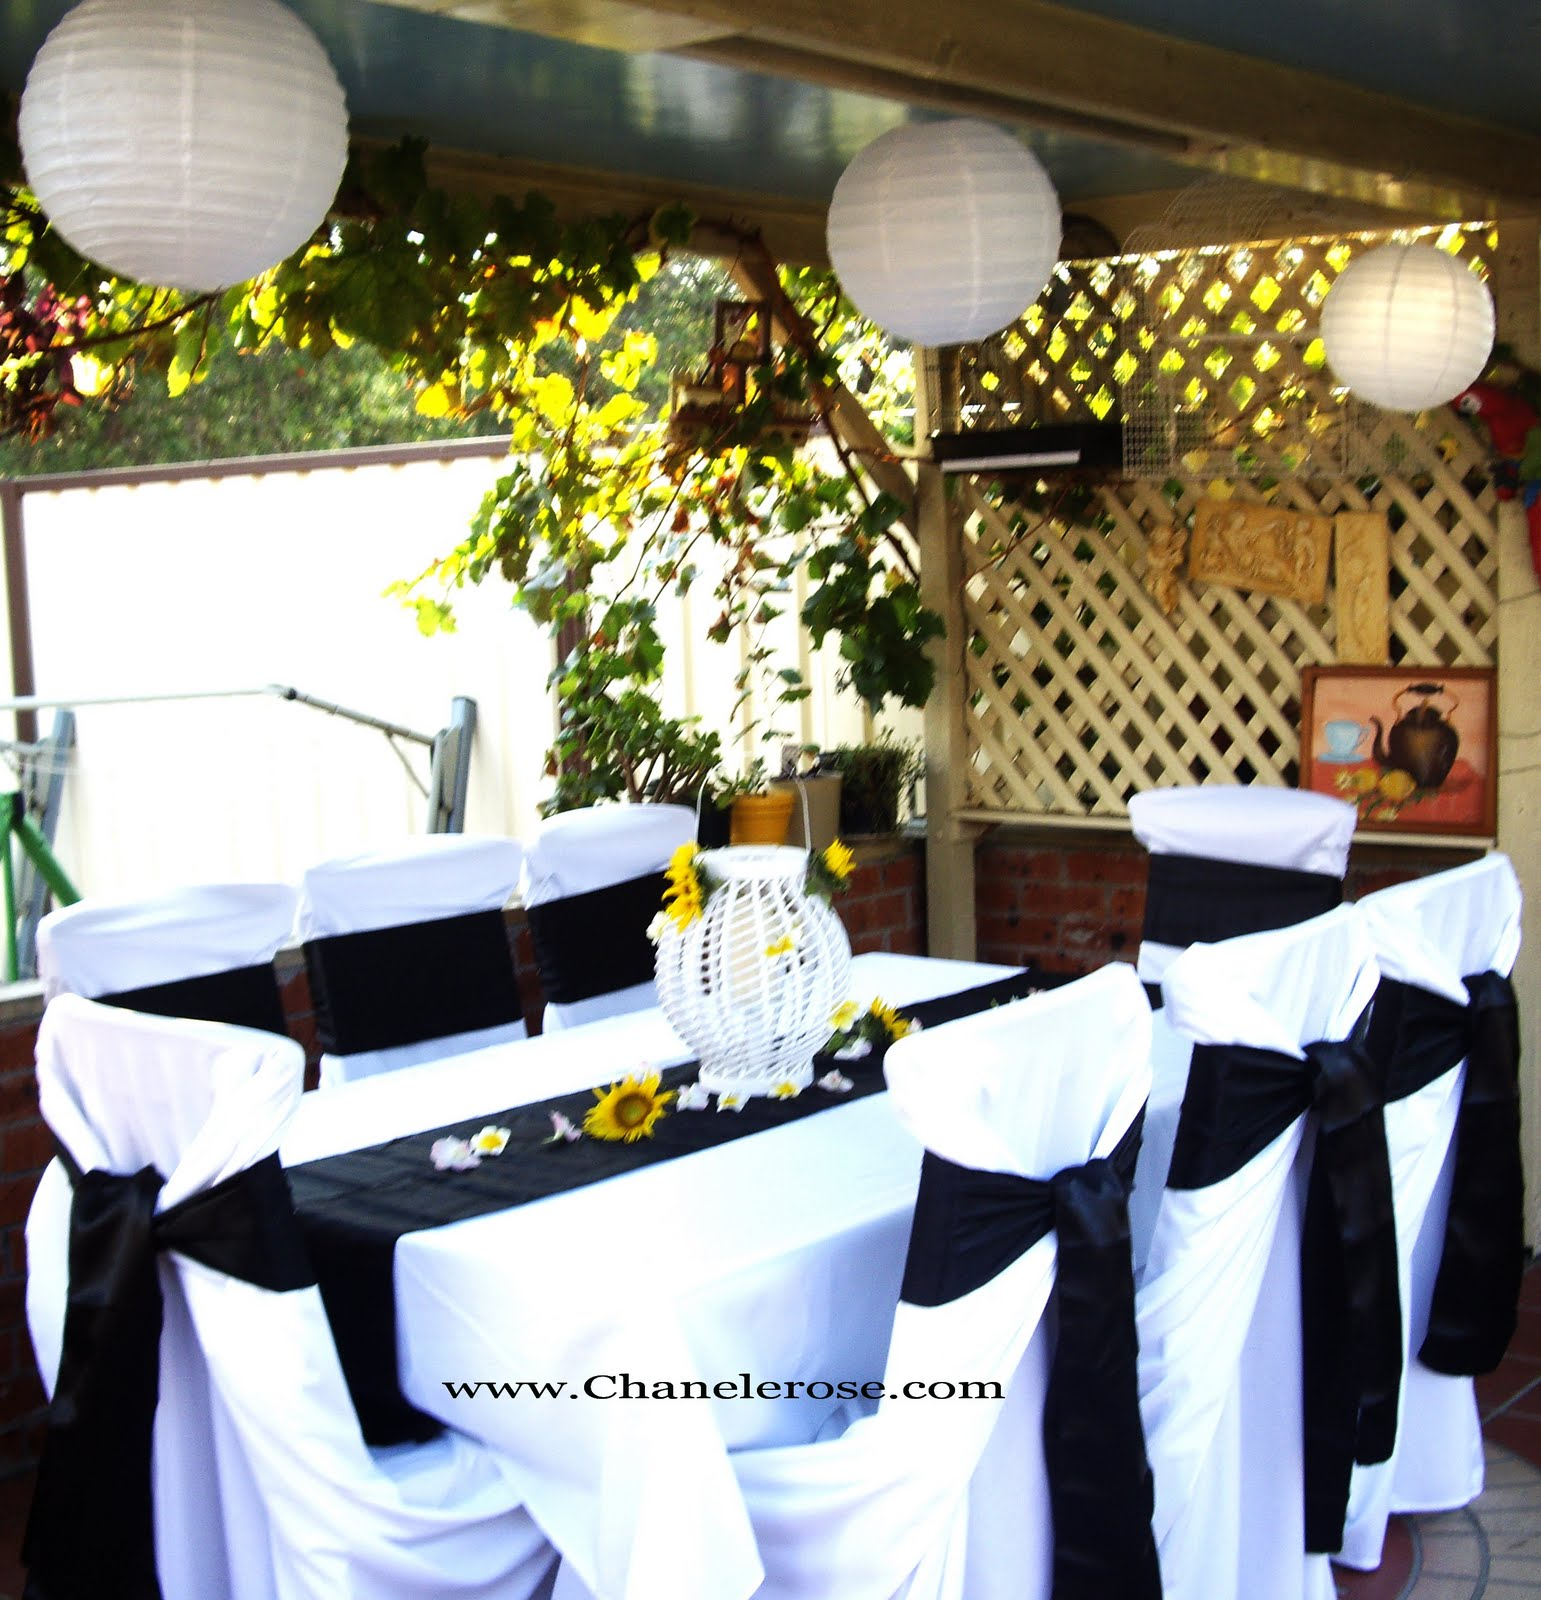 Chanele Rose Flowers Blog Sydney Wedding Stylist Florist Dinner